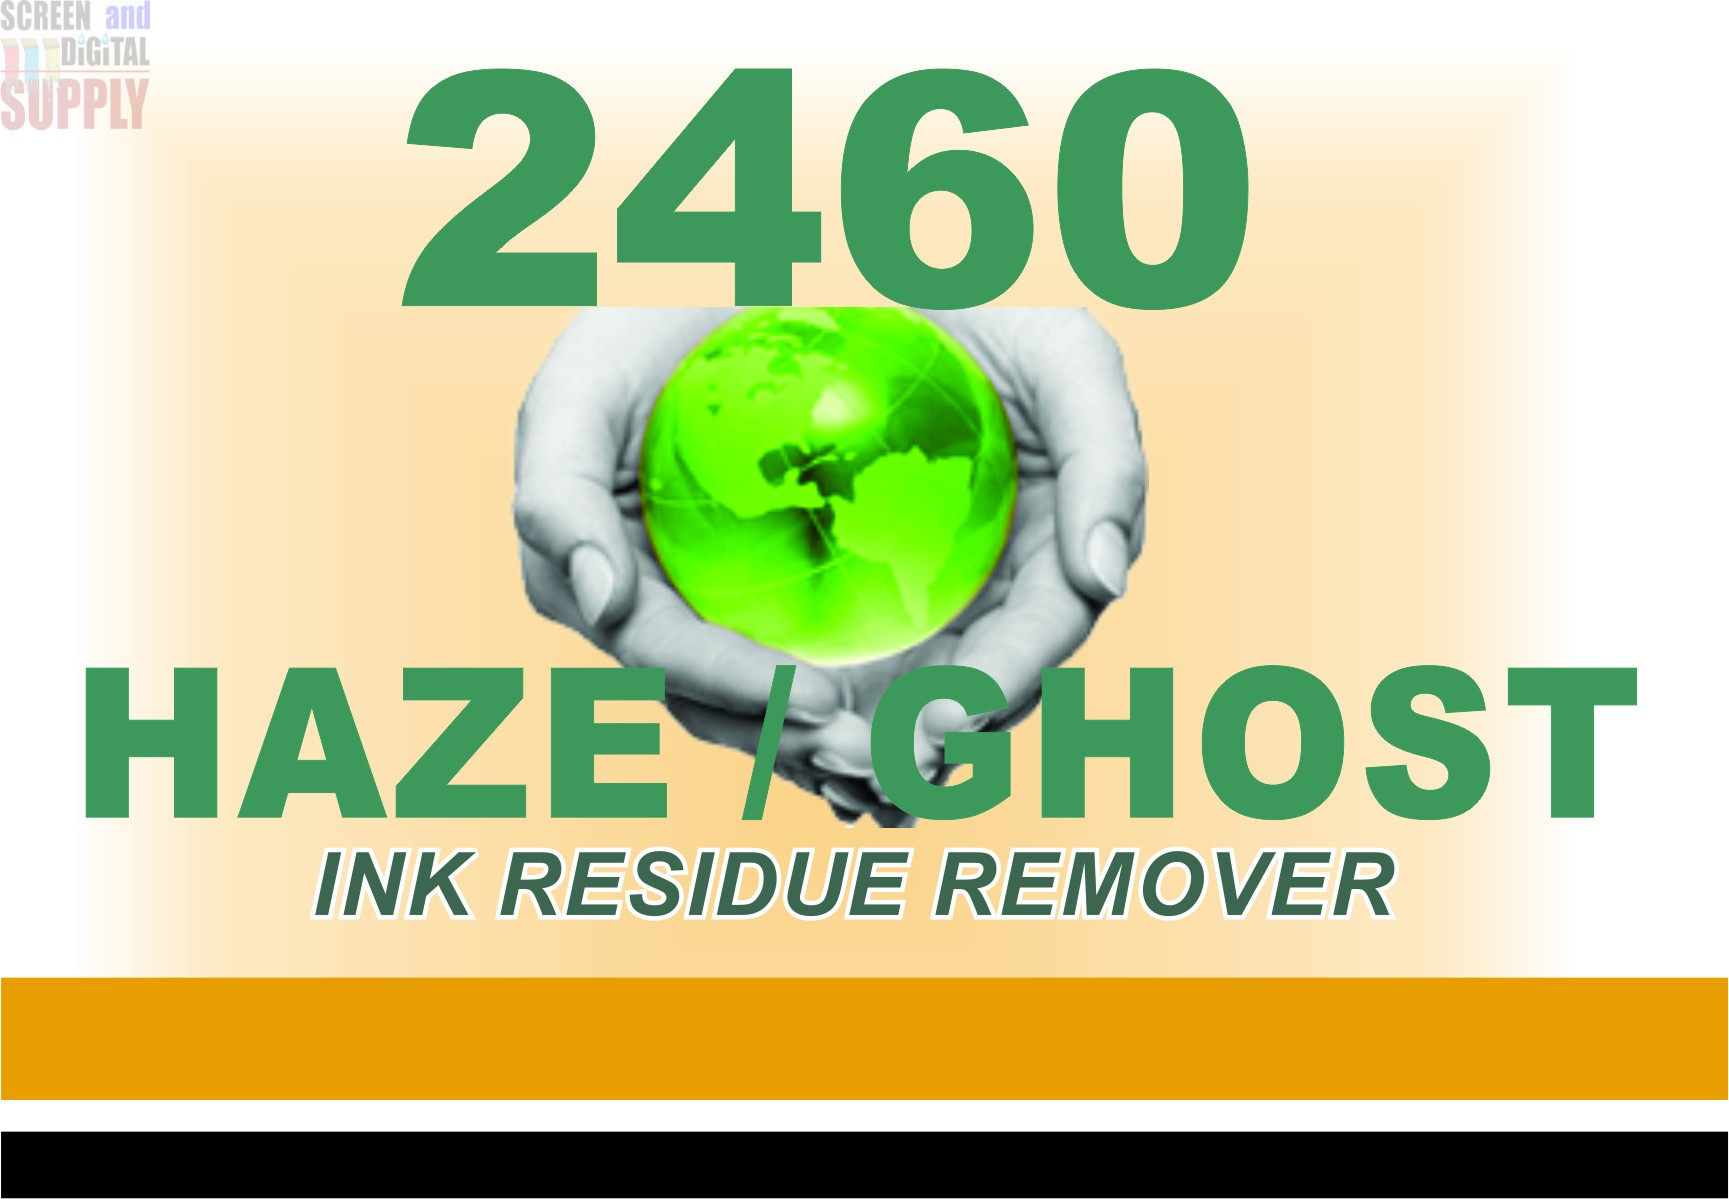 2460 Haze/Ghost Remover Ink Degradent